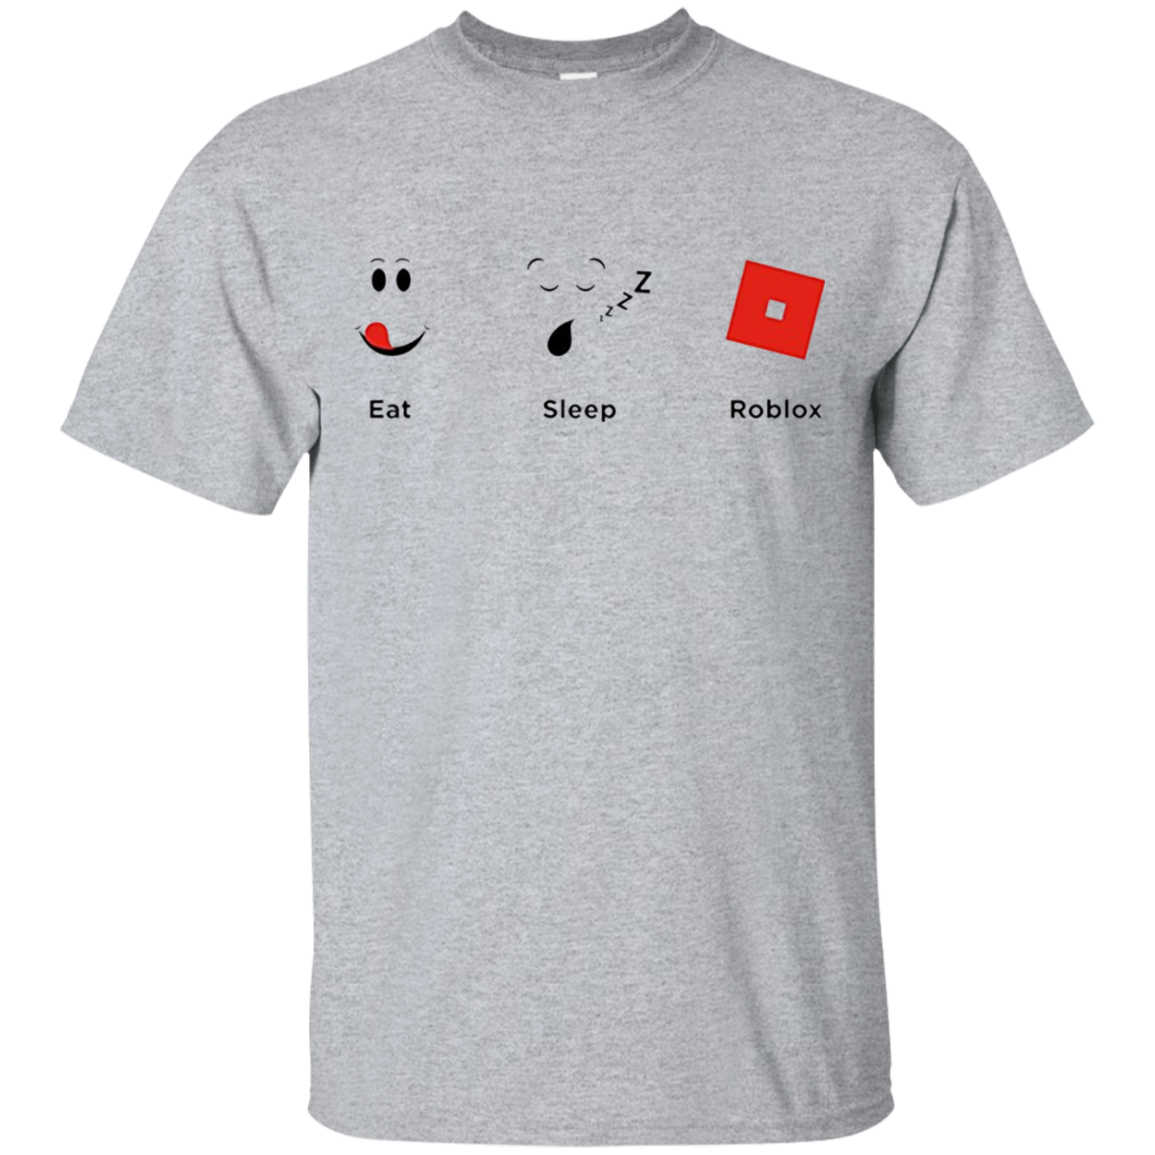 How To Make A Transparent T Shirt On Roblox Bet C